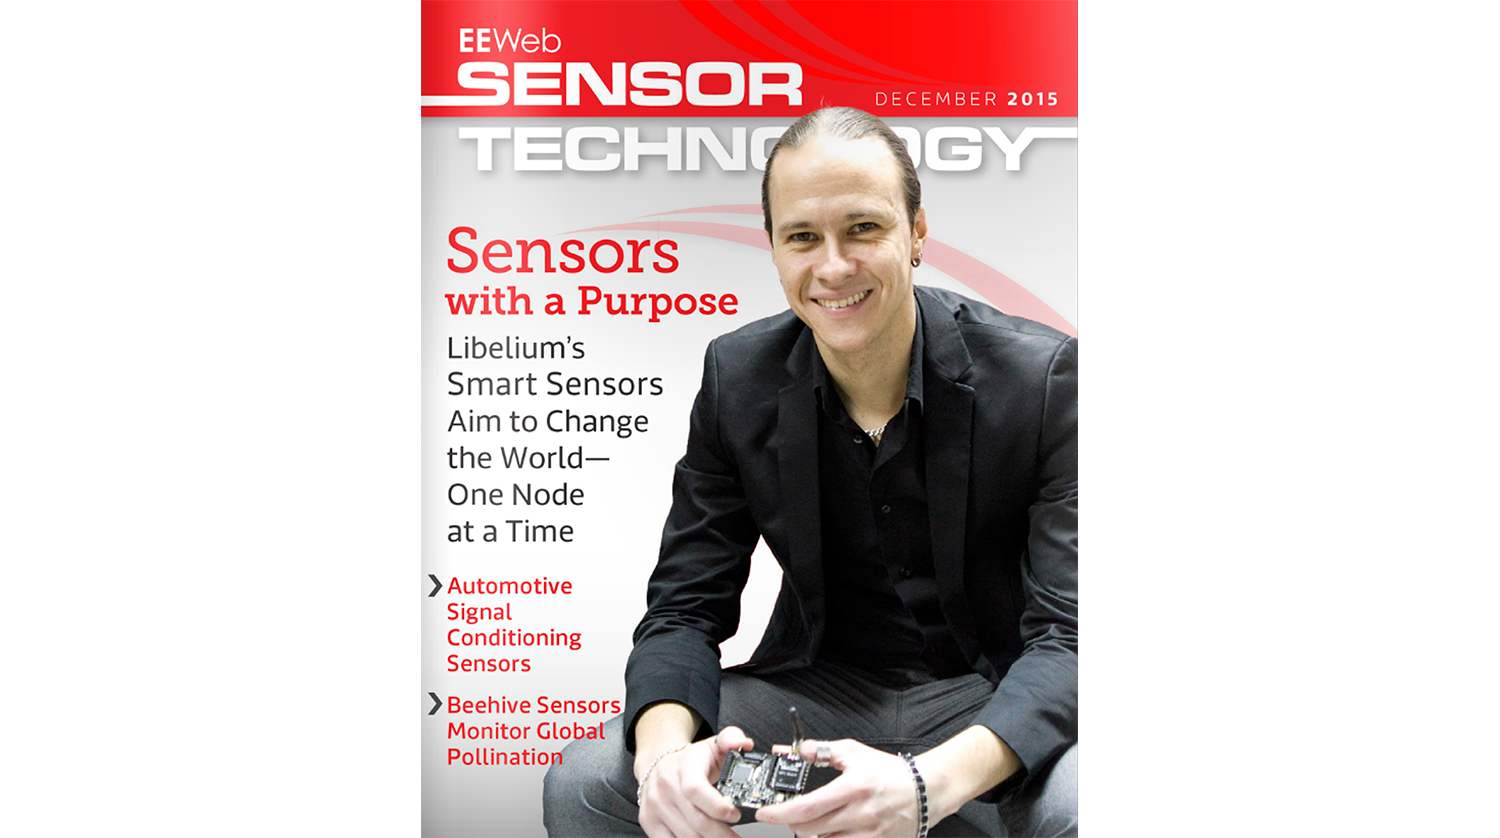 EEWEB - Sensor Technology